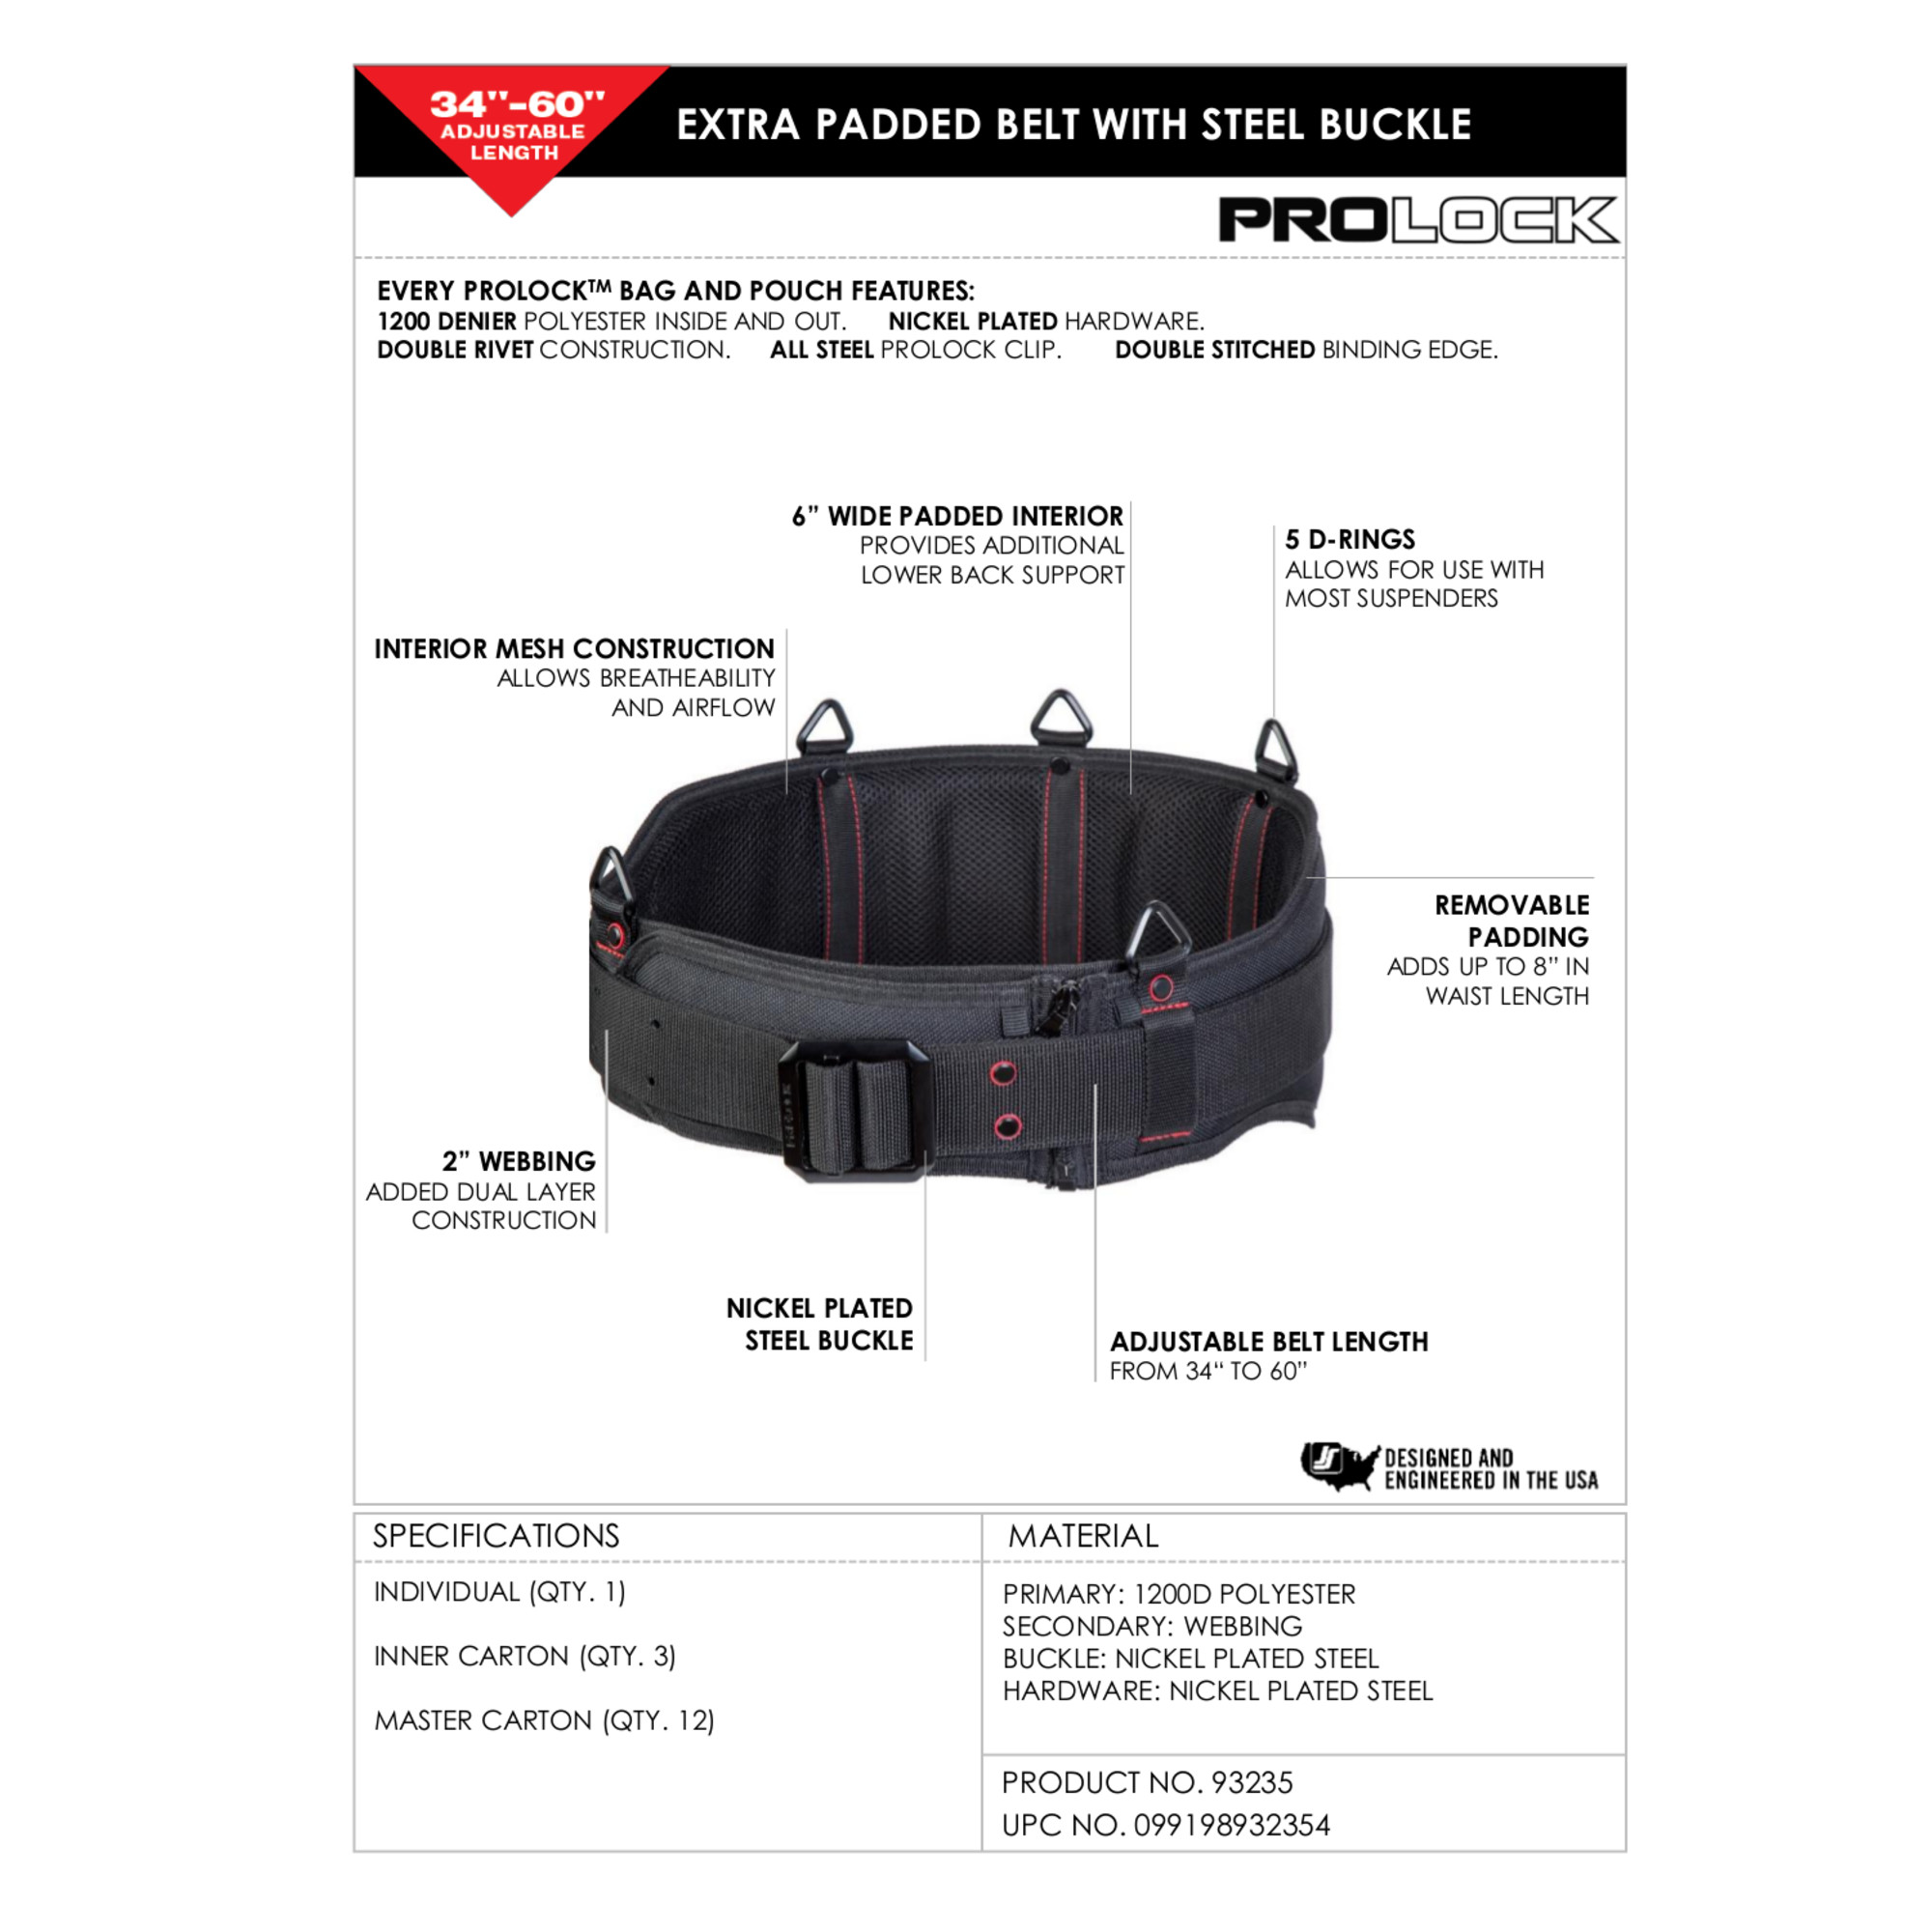 PROLOCK 93235 Extra Padded Sling Belt with Steel Buckle